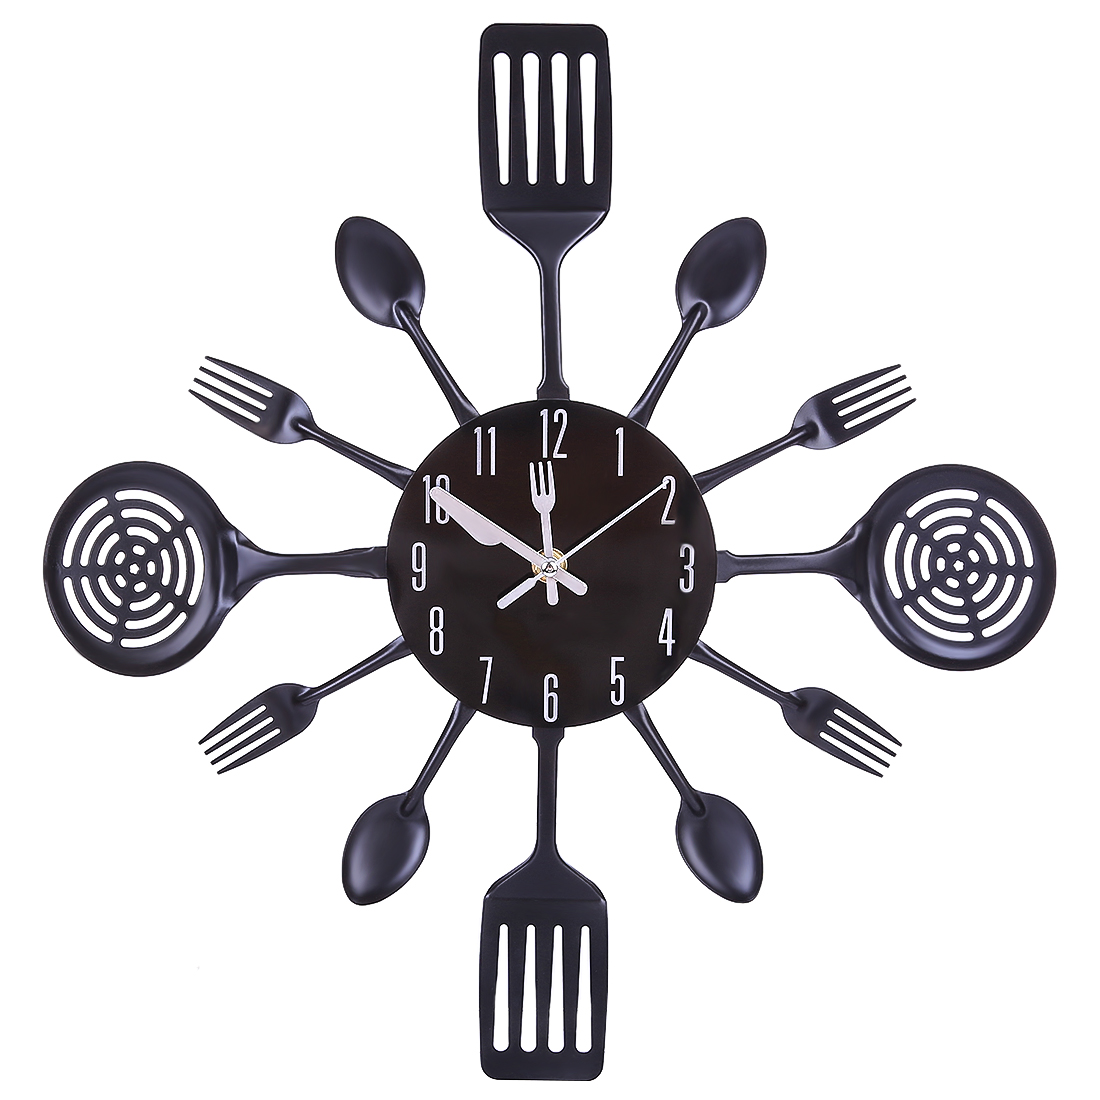 . US  13 6 44  OFF 41 5cm Metal Cutlery Kitchen Wall Clock Quartz Wall Clocks  Modern Design Spoon Fork Clock Home Kitchen Office Decor Gift Black in